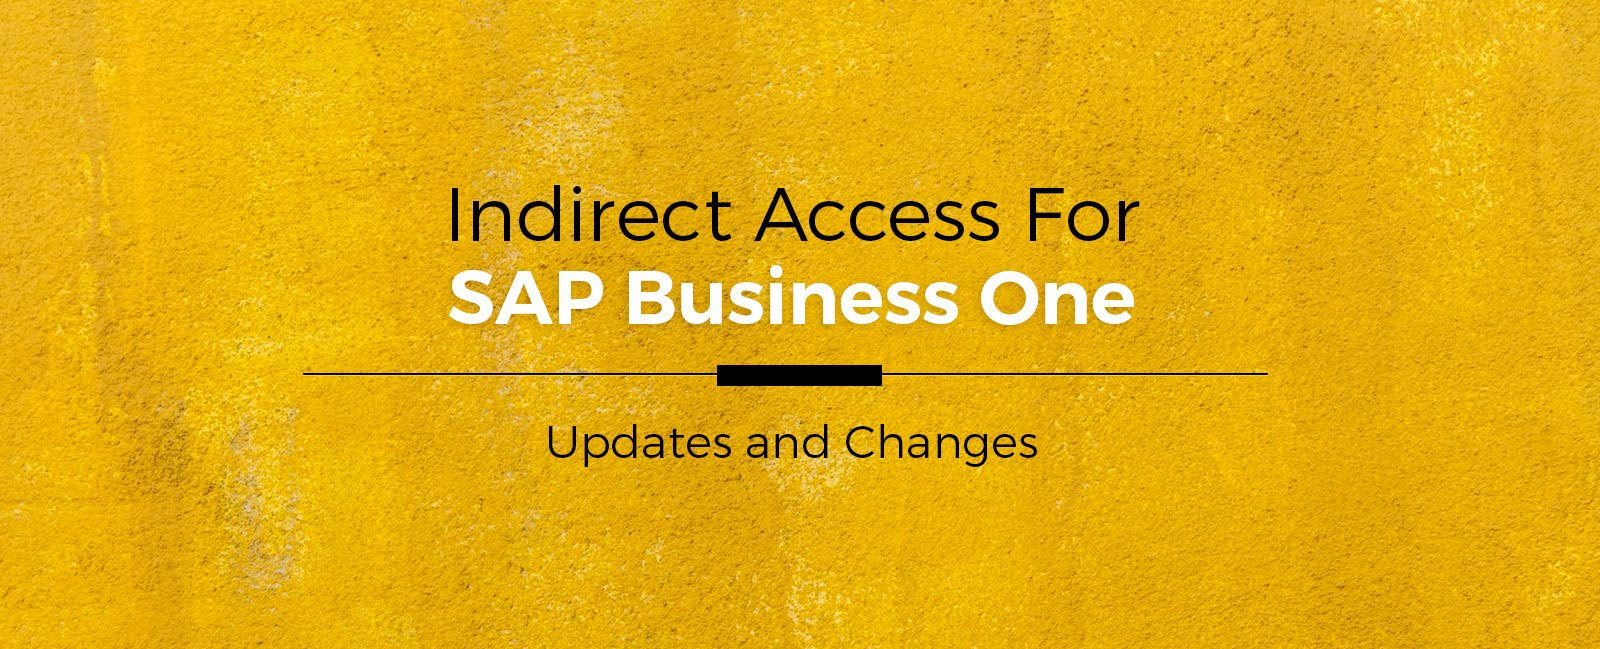 Indirect-Access-For-SAP-Business-One-Updates